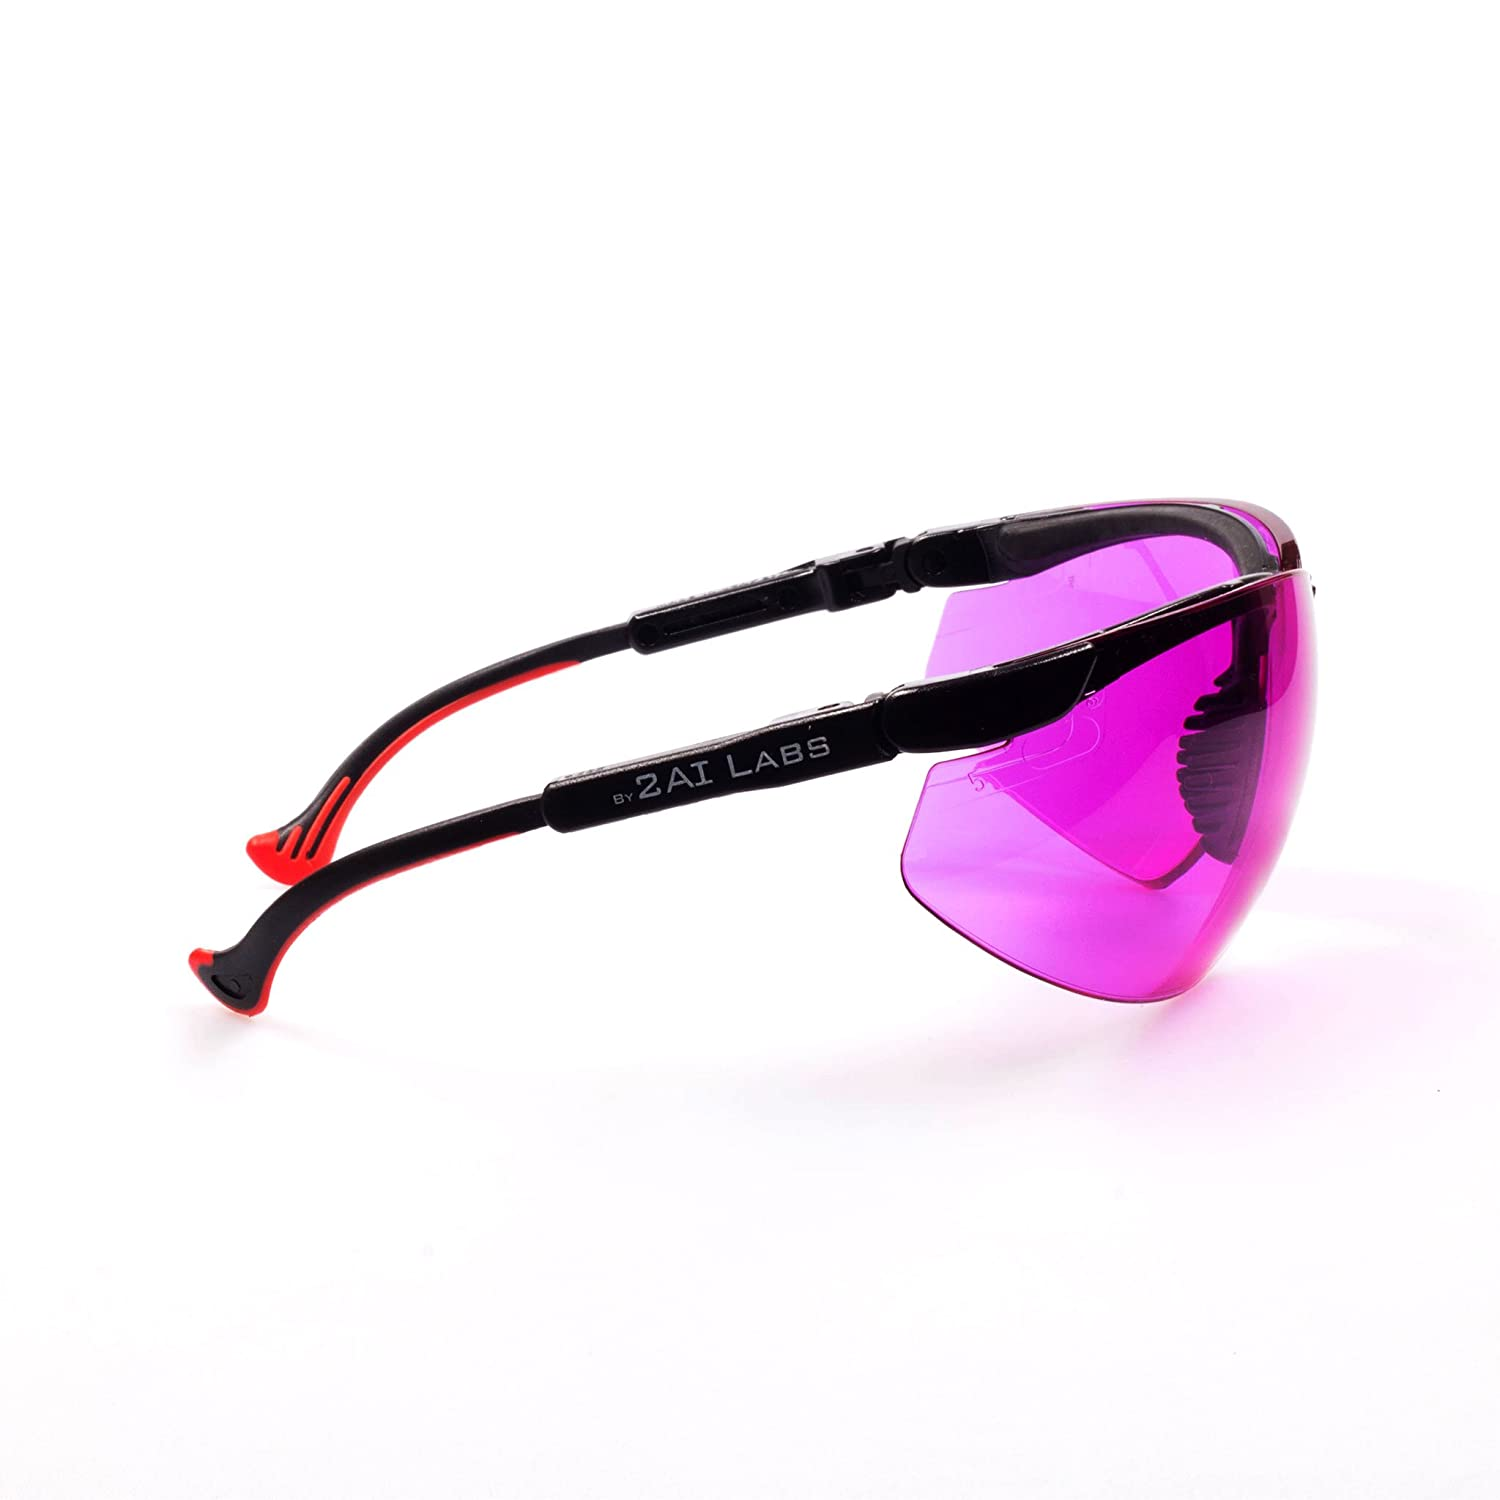 fc5caf1b15ab Amazon.com  Oxy-Iso Blood Draw and Color Blindness Glasses